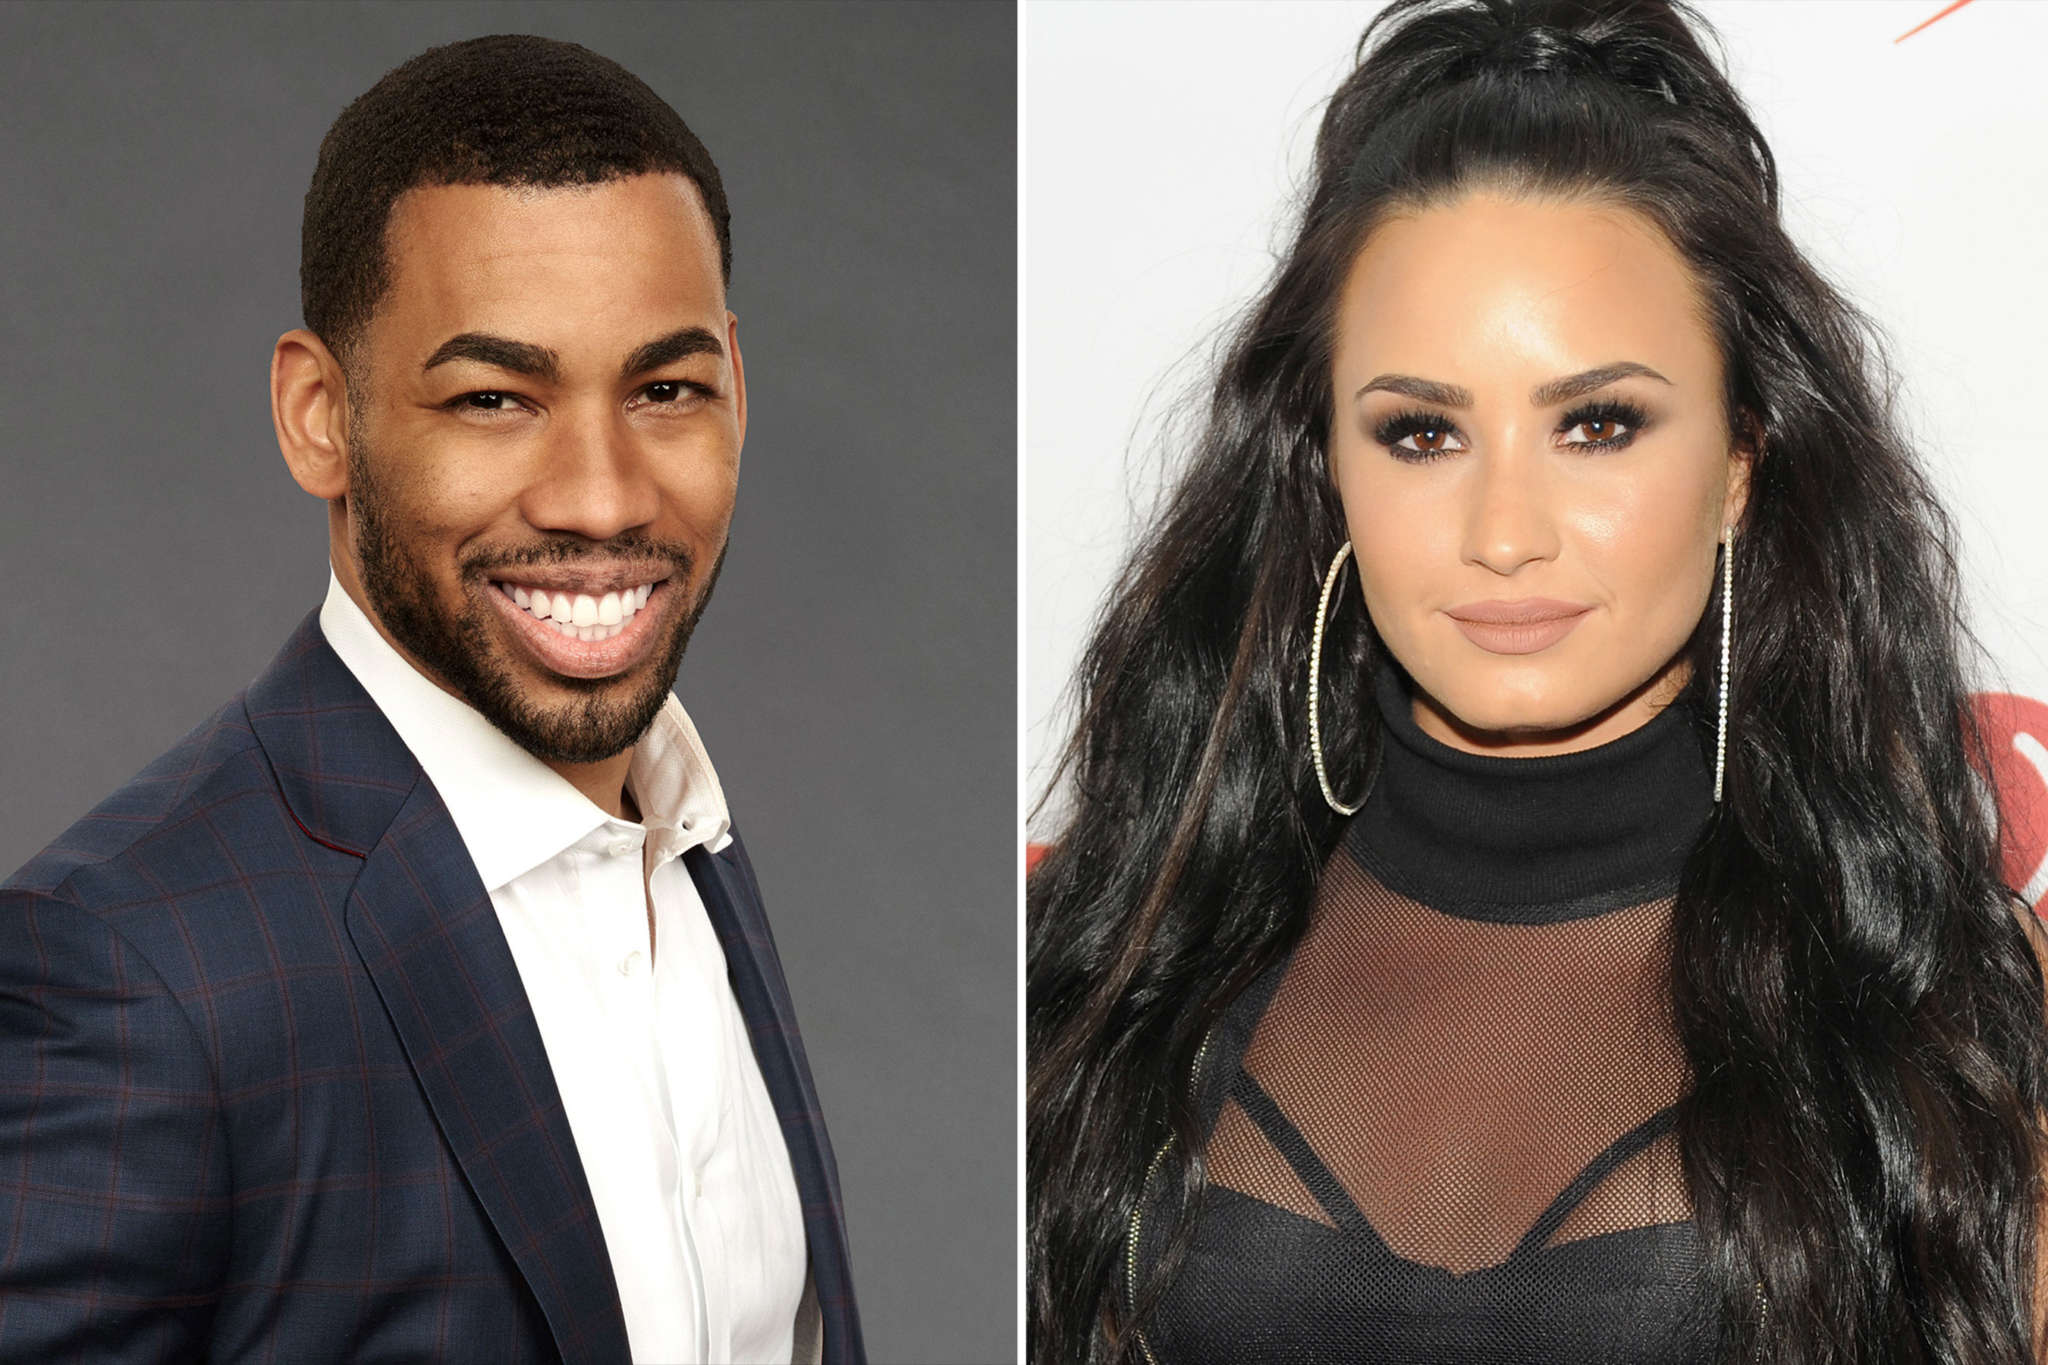 Demi Lovato Has the Biggest Crush on The Bachelorette's Mike